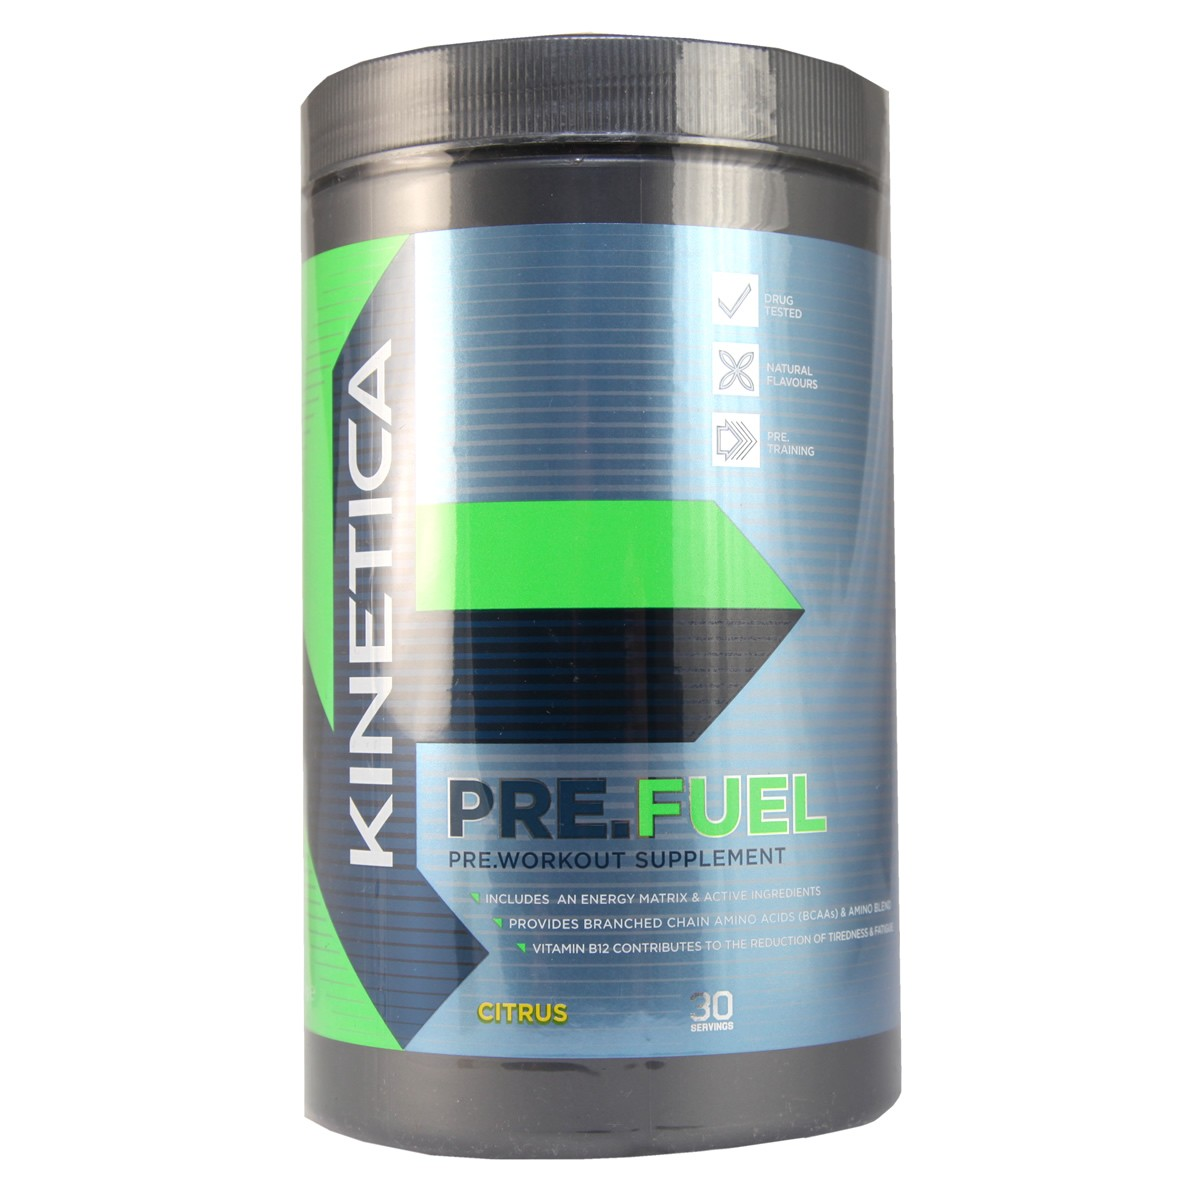 Kinetica Pre Fuel Pre-Workout Supplement